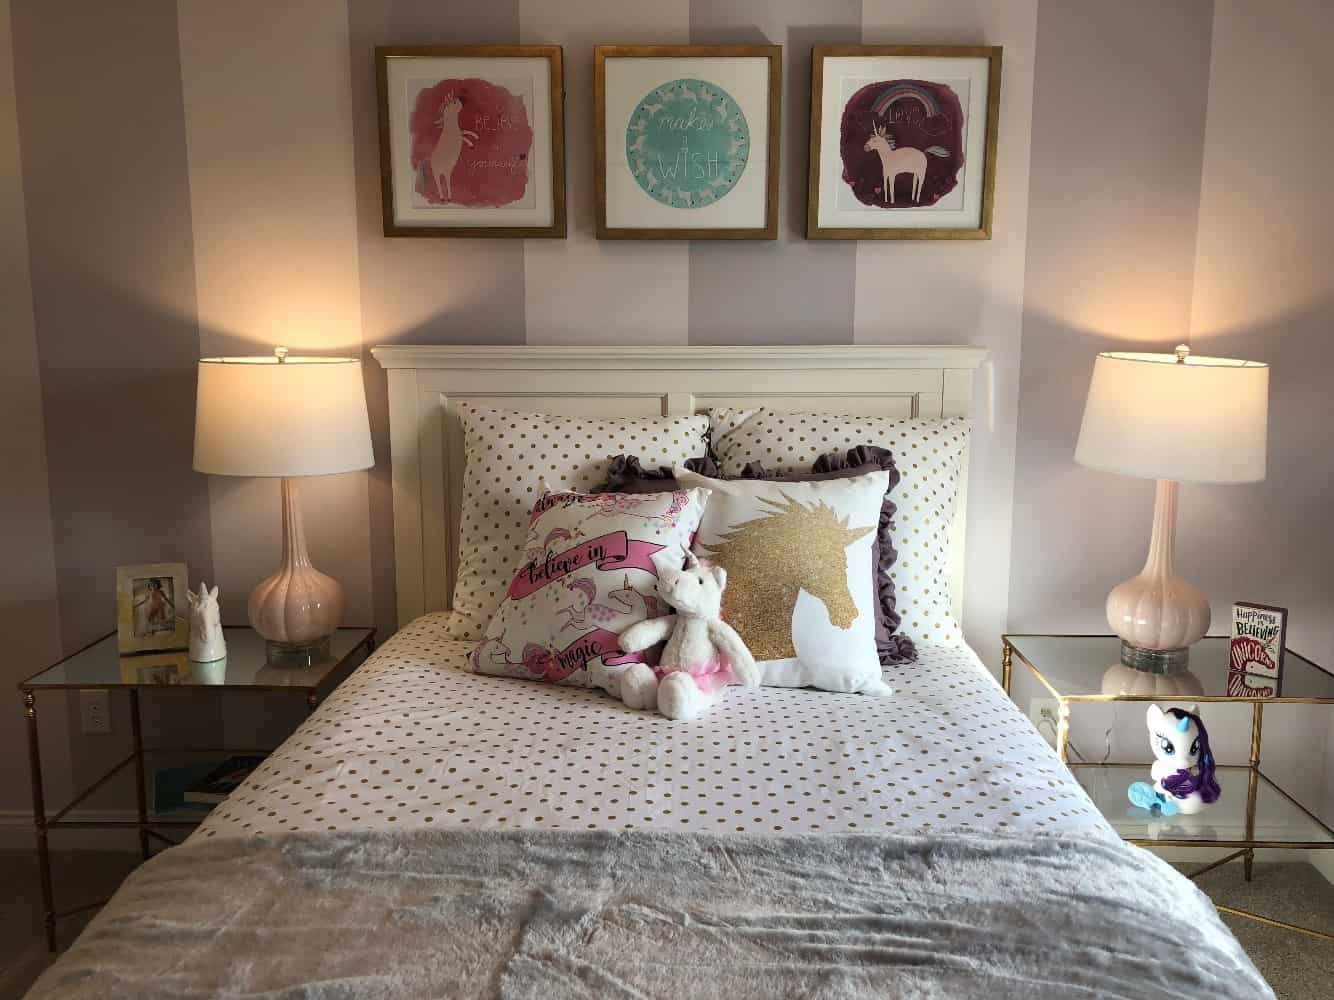 Unicorn Bedroom Ideas   5 Simple steps   Party with Unicorns